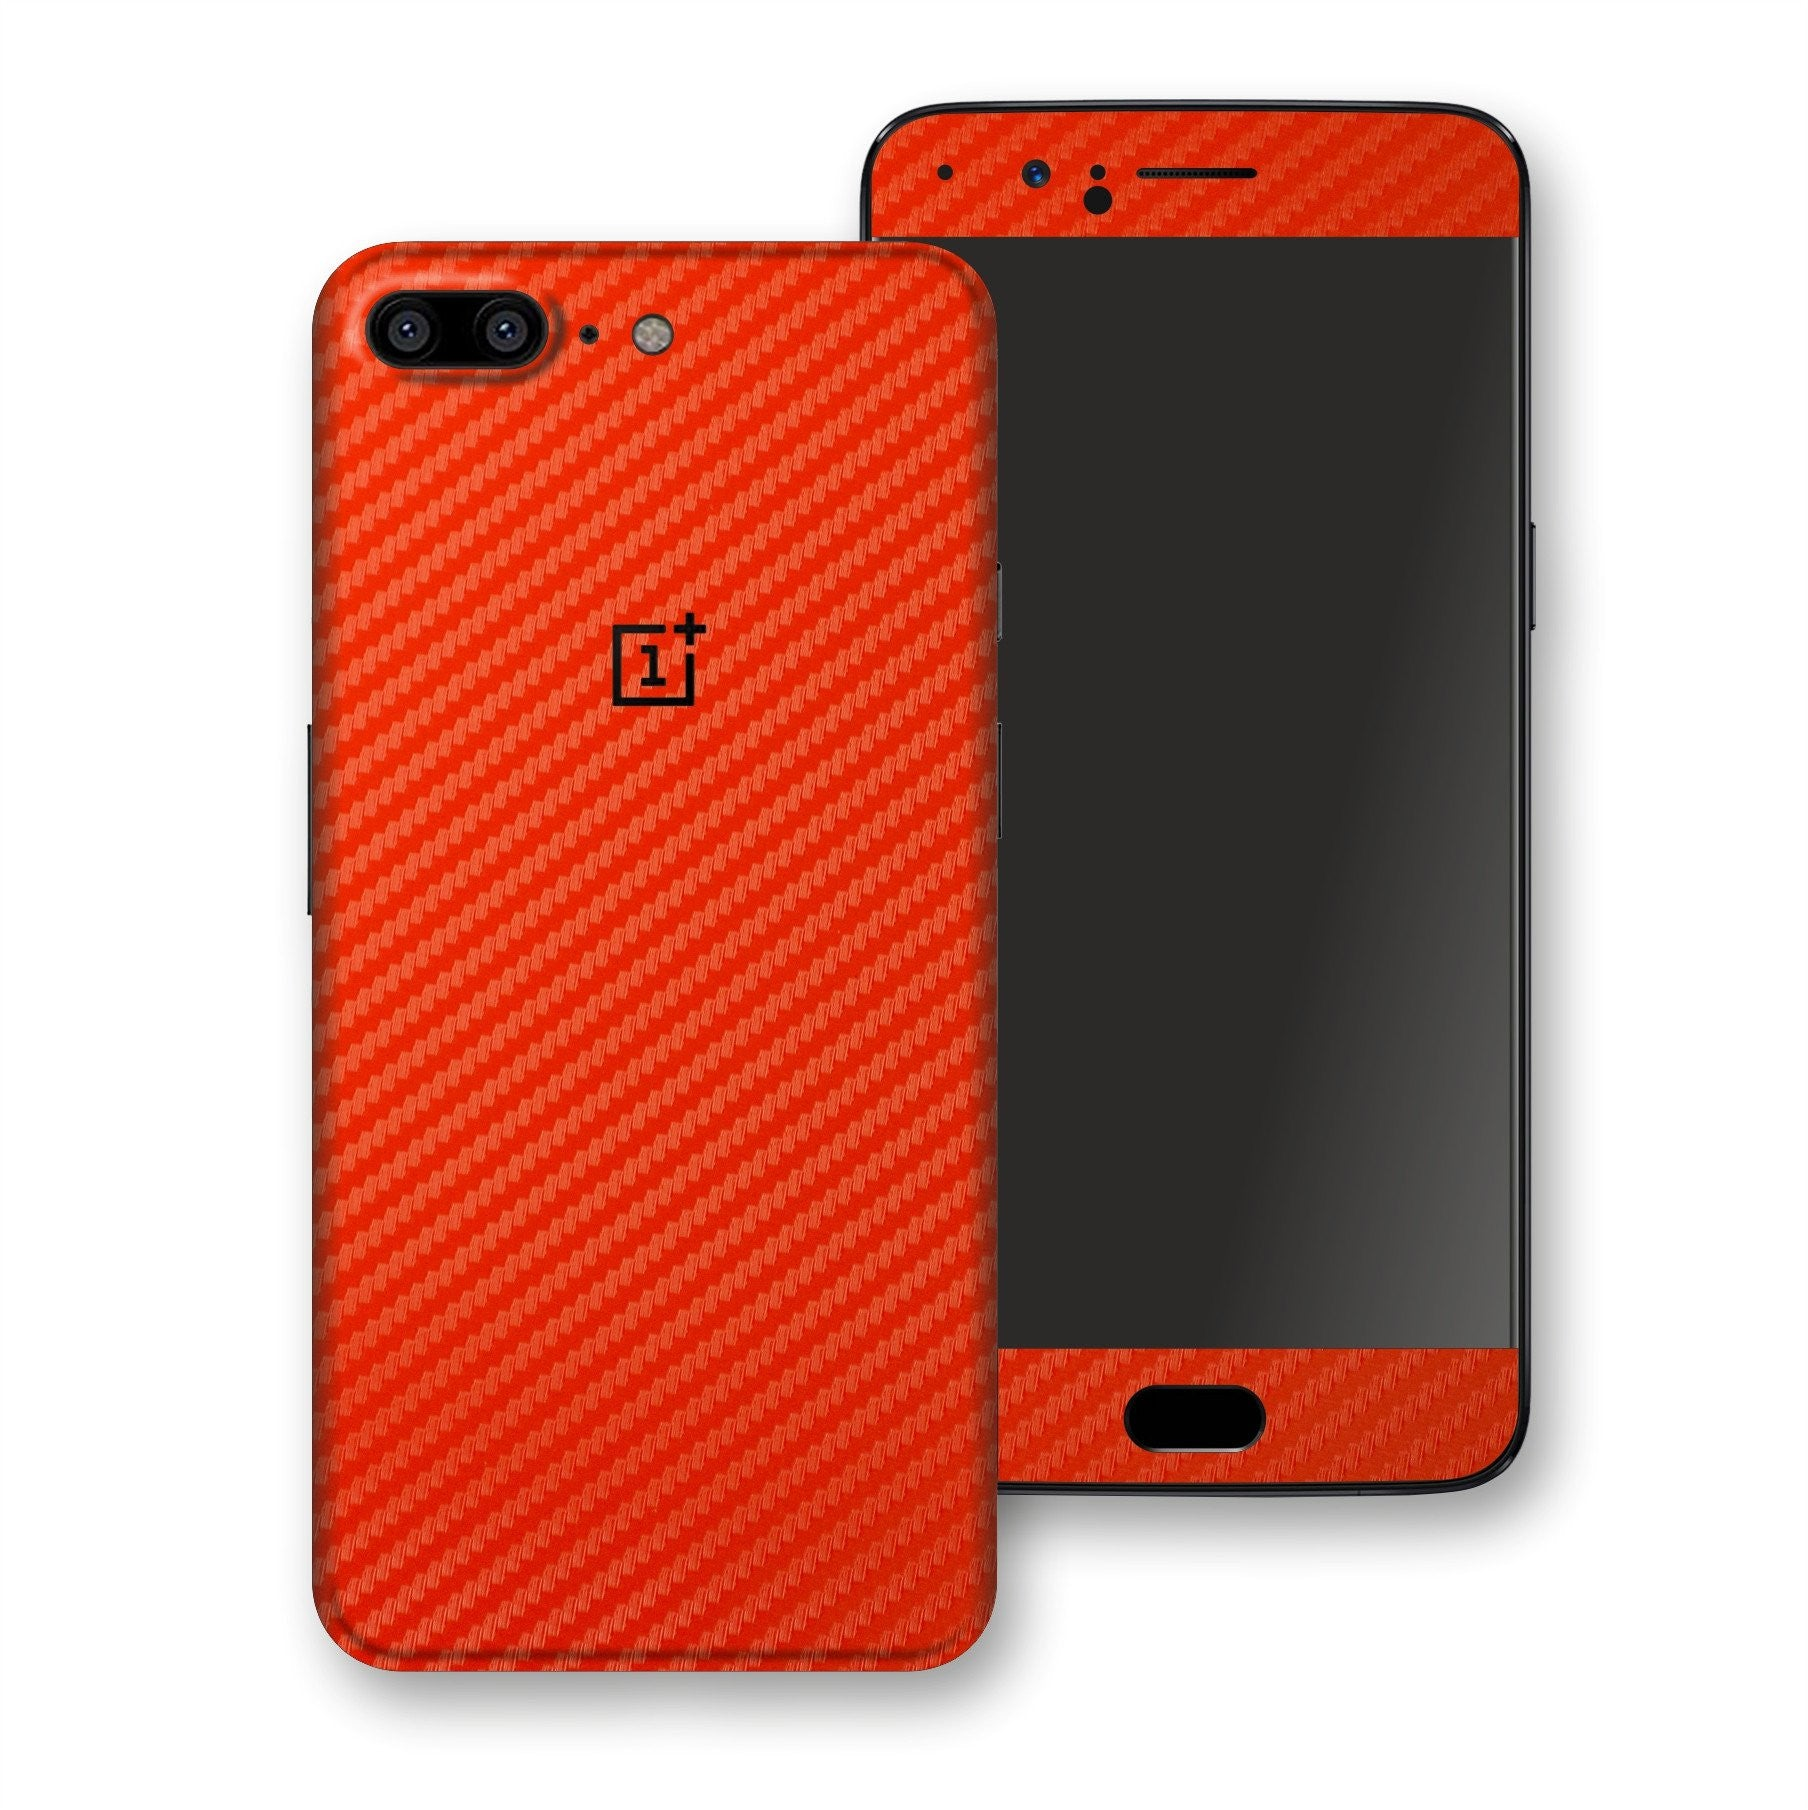 OnePlus 5 3D Textured Red Carbon Fibre Fiber Skin, Decal, Wrap, Protector, Cover by EasySkinz | EasySkinz.com